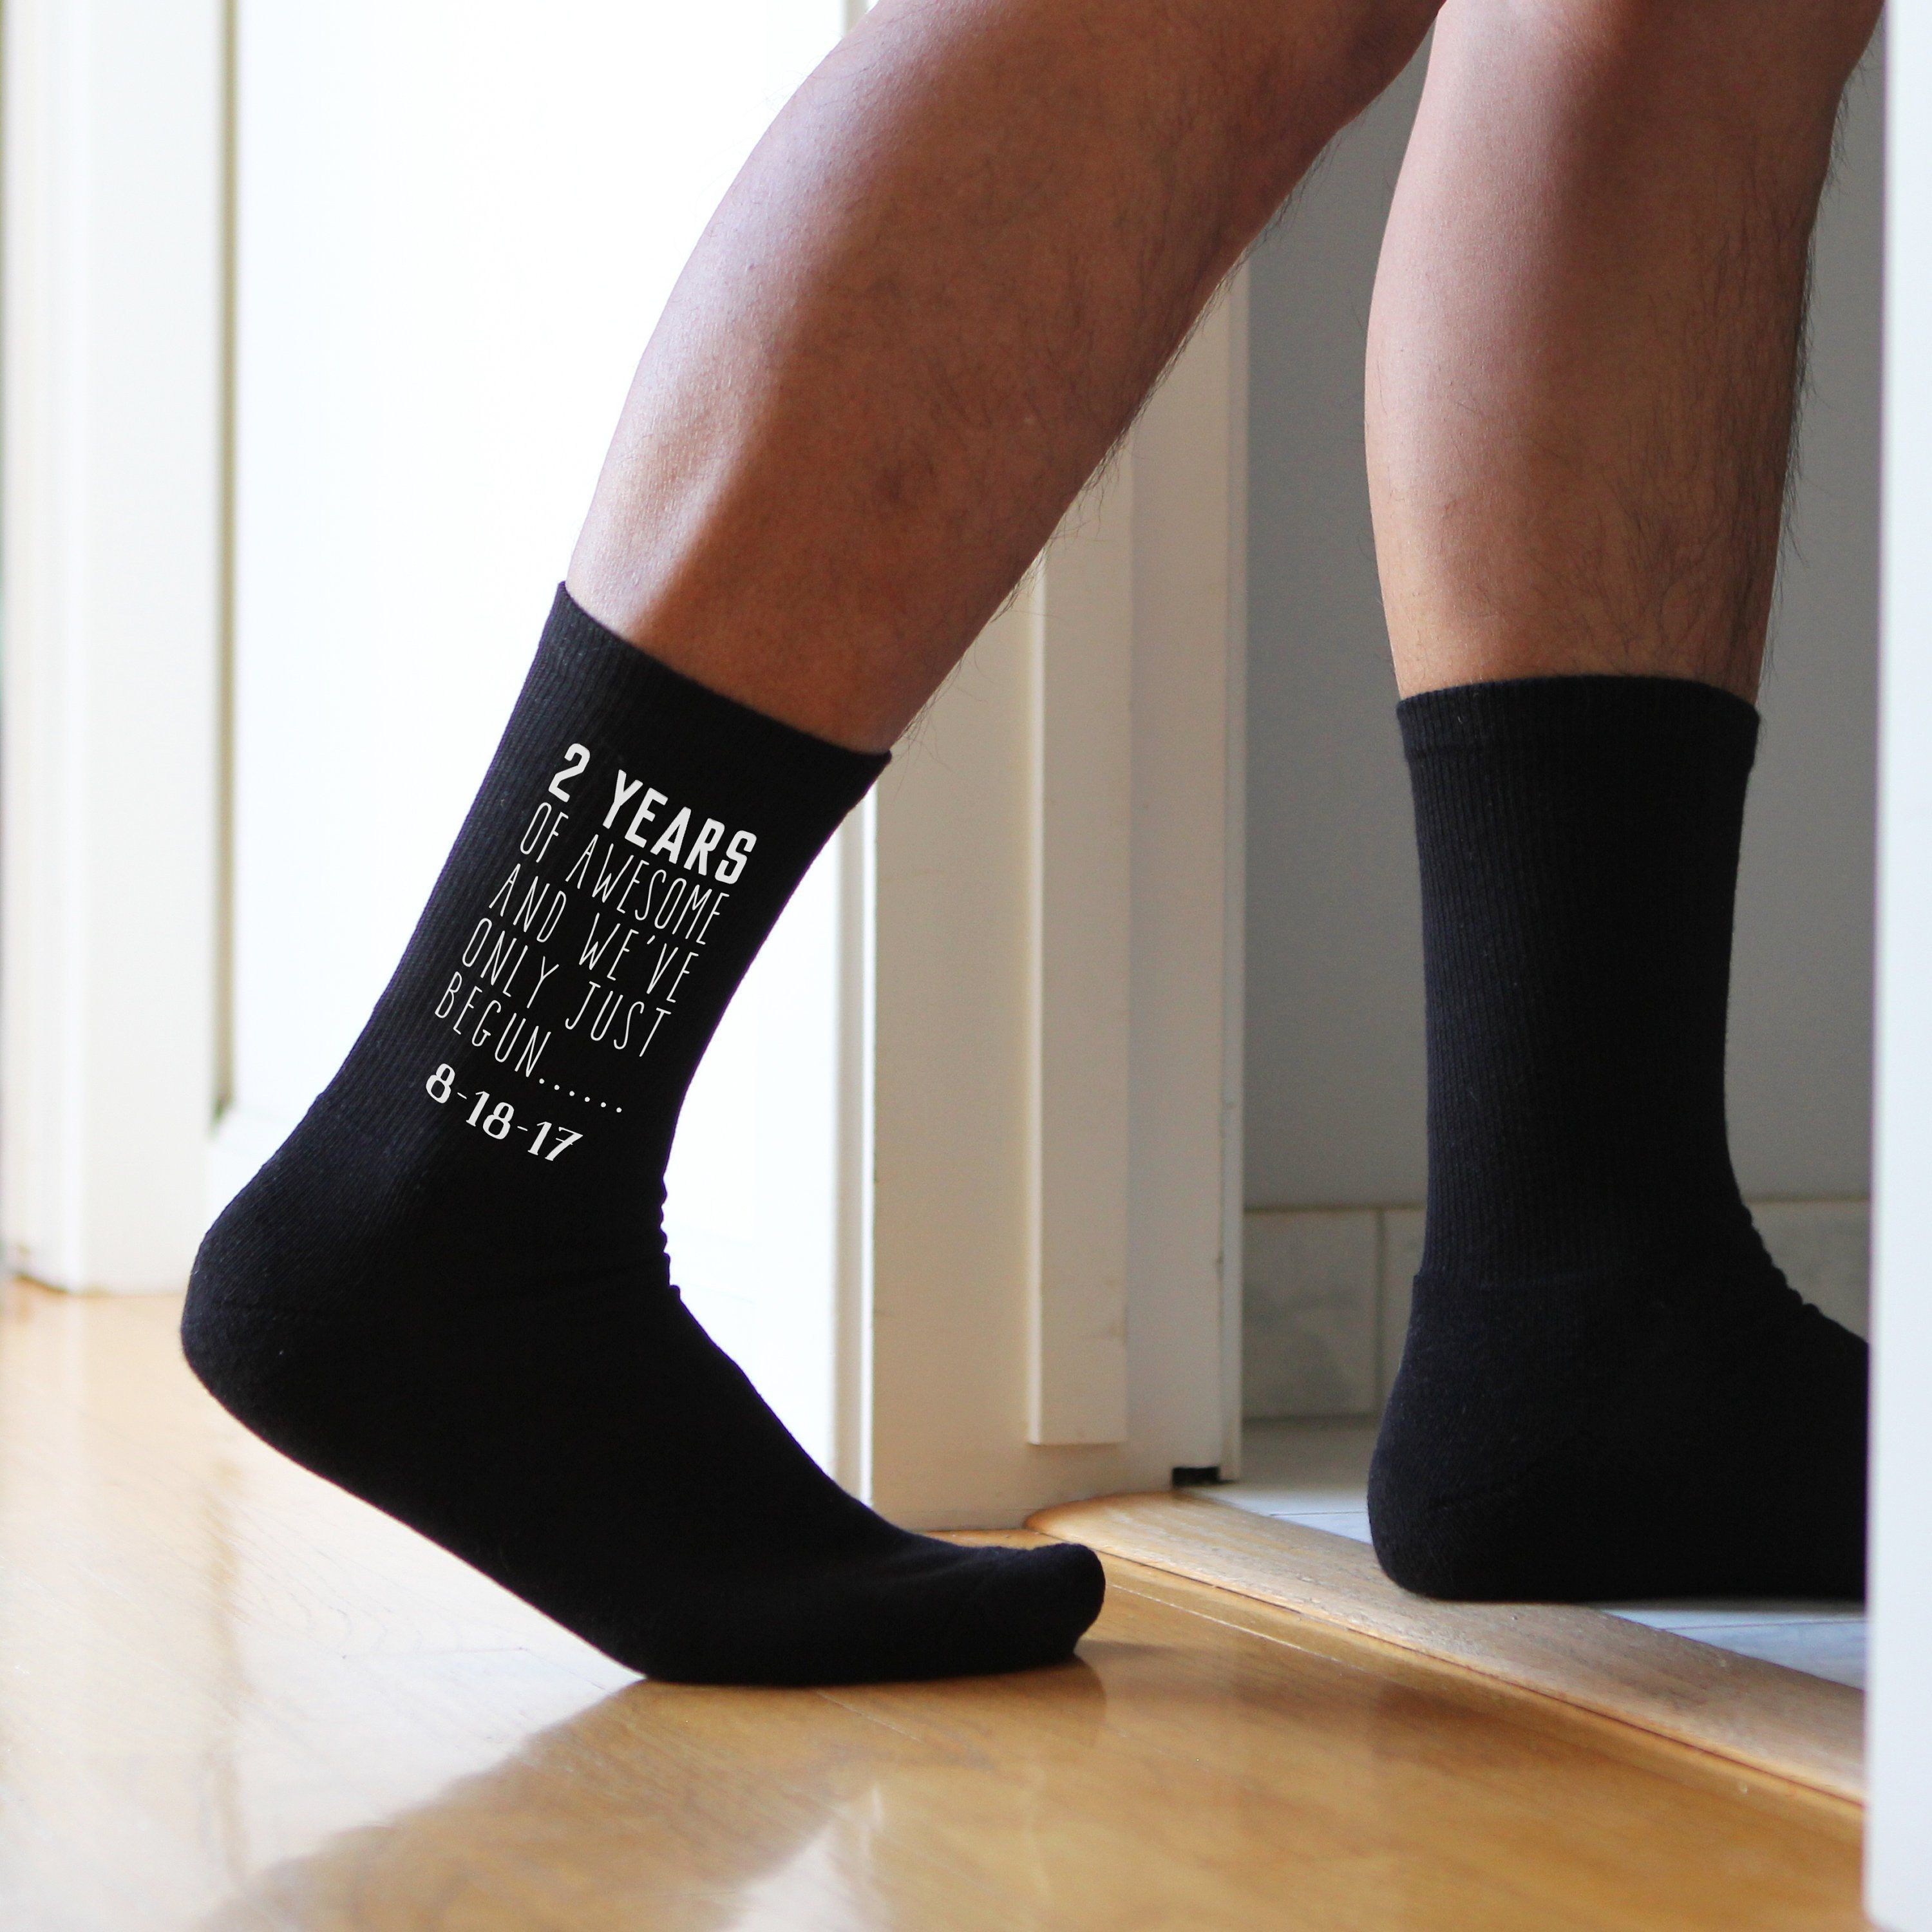 2 year anniversary socks for a cotton anniversary gift